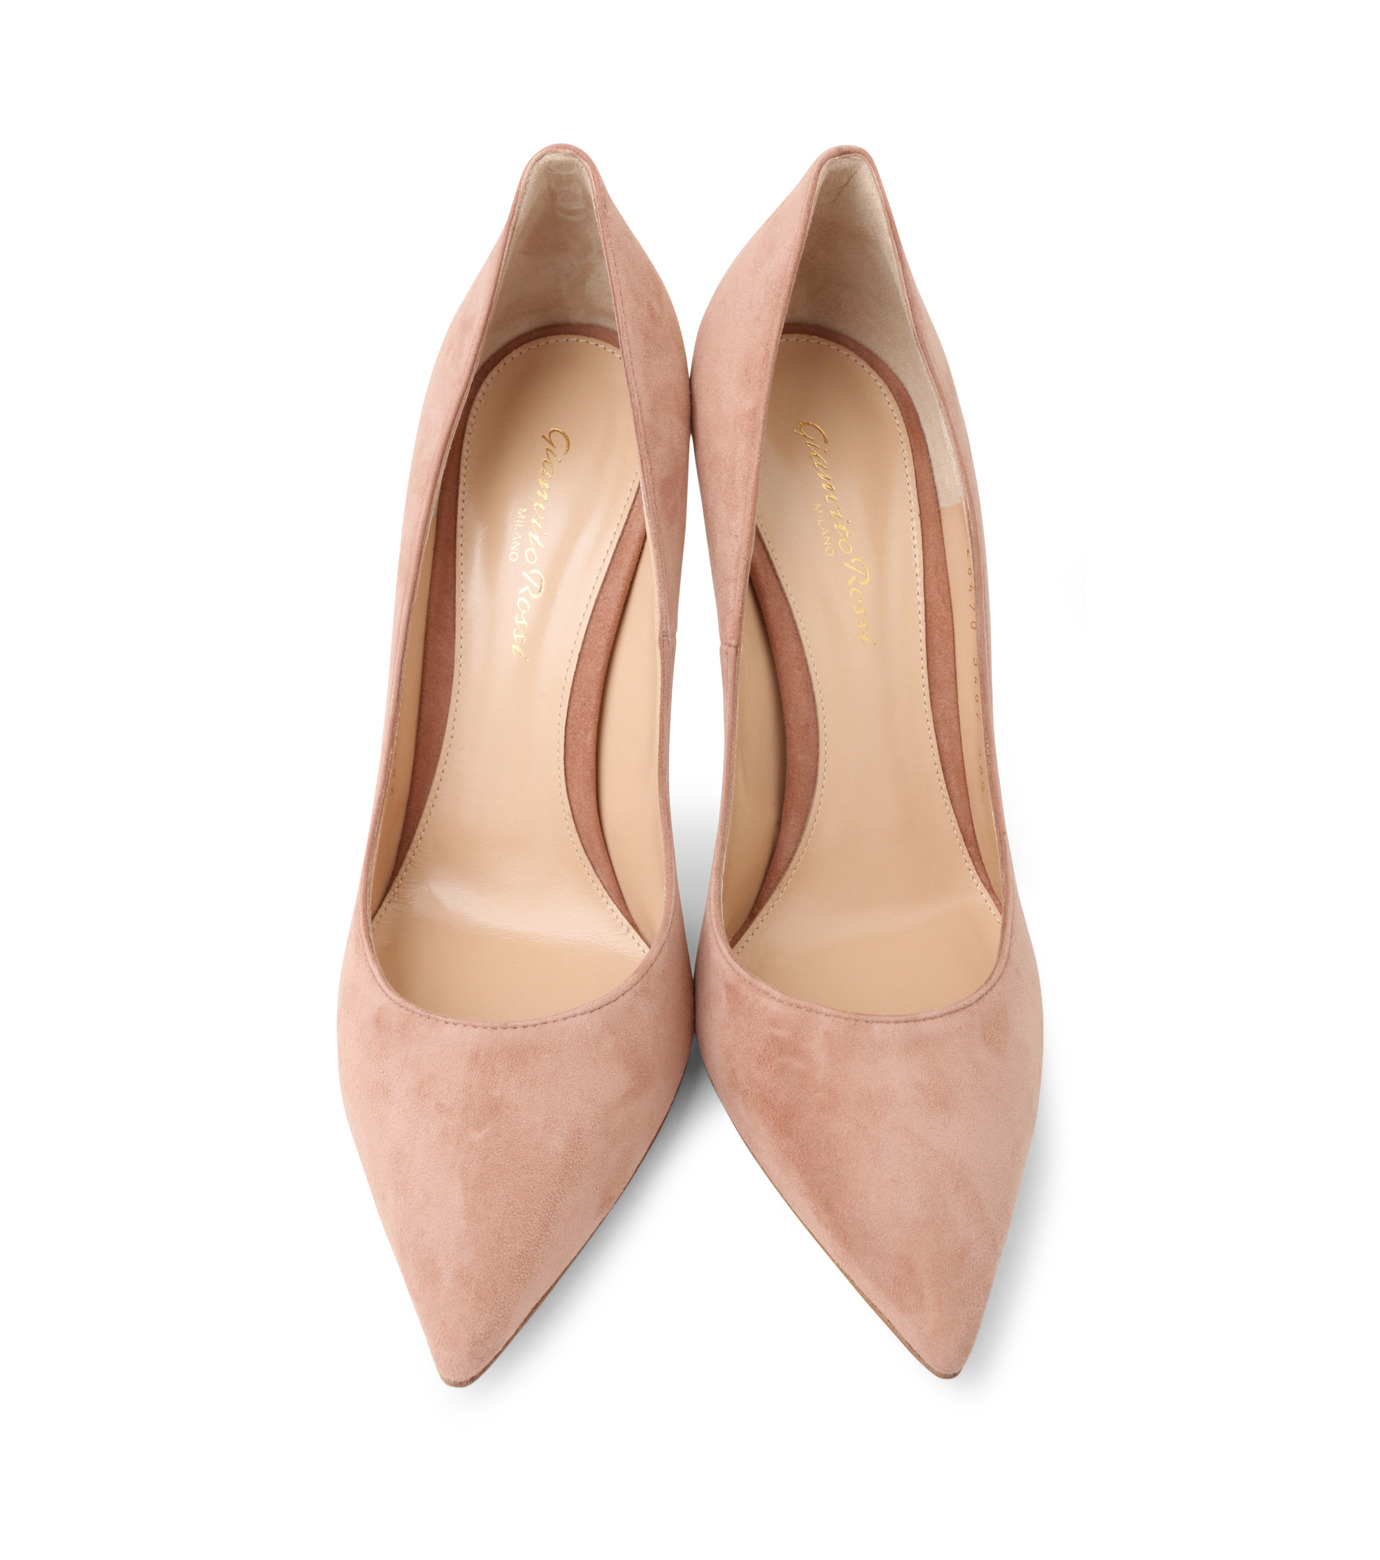 Gianvito Rossi(ジャンヴィト ロッシ)のSuede Pump-LIGHT BEIGE(パンプス/pumps)-G28470-51 拡大詳細画像4